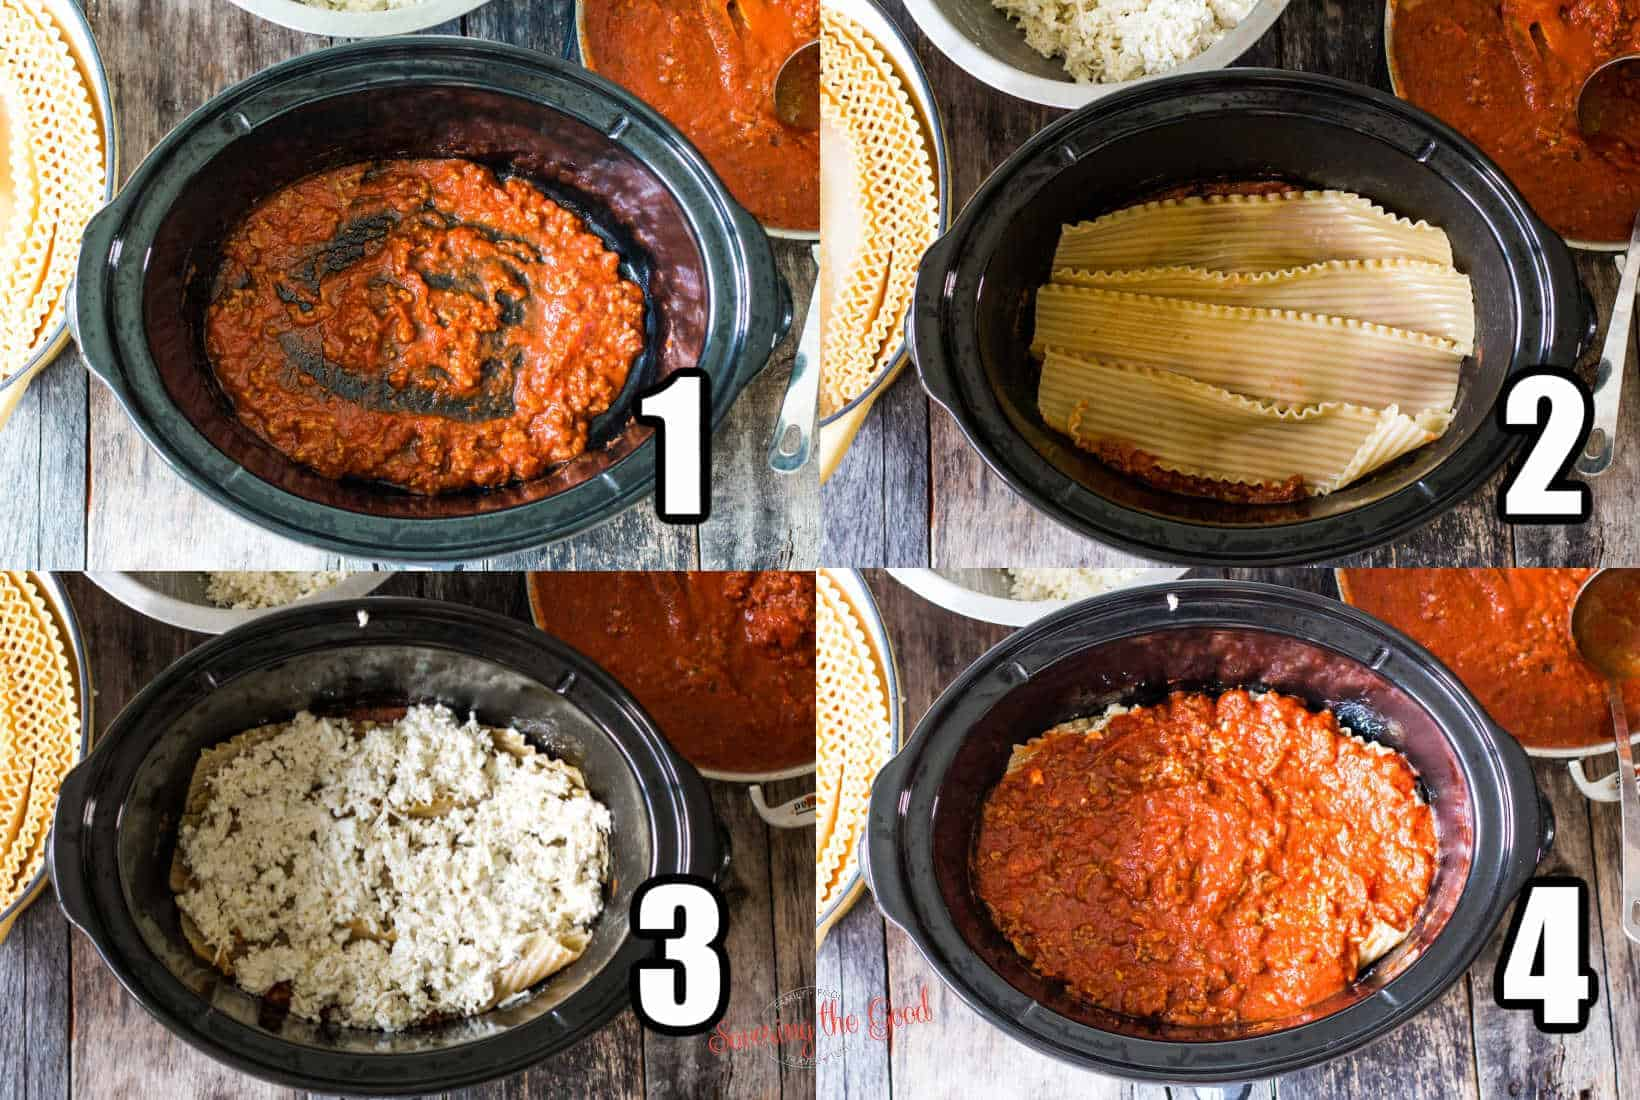 4 images of the steps of layering the lasagna ingredients in to the crockpot, numbers calling out the steps